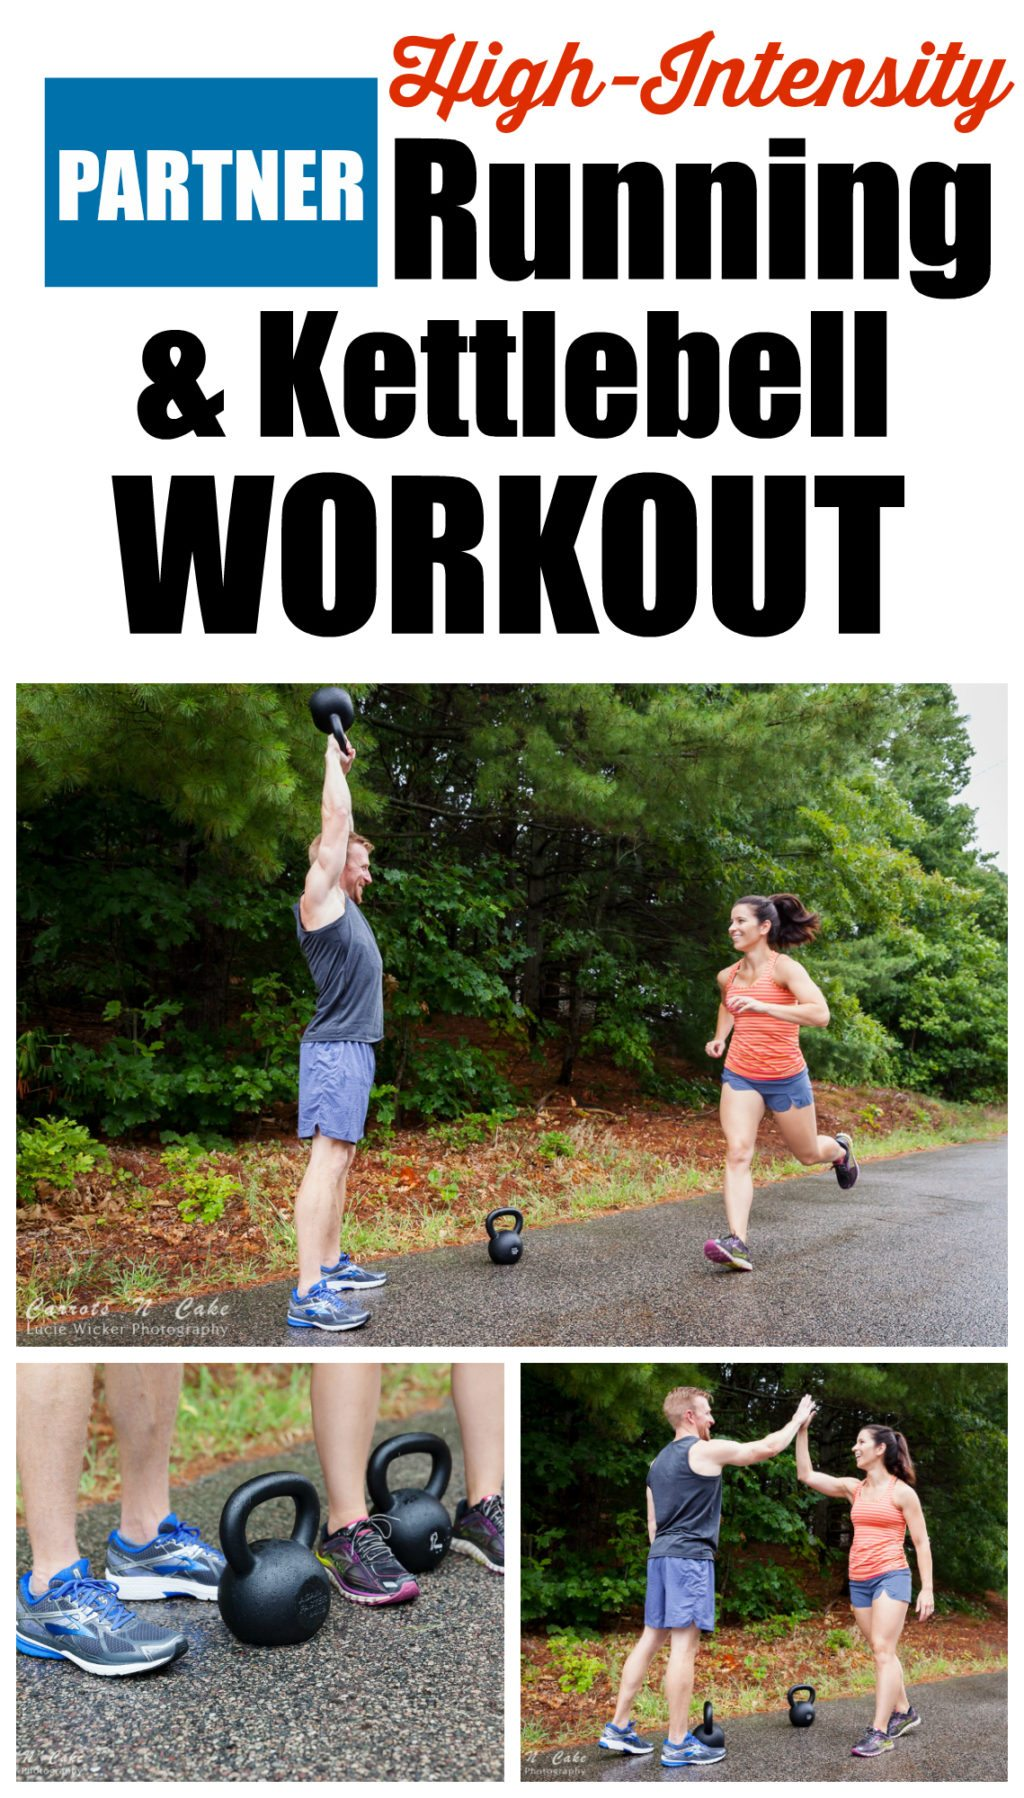 Partner Running & Kettlebell Workout